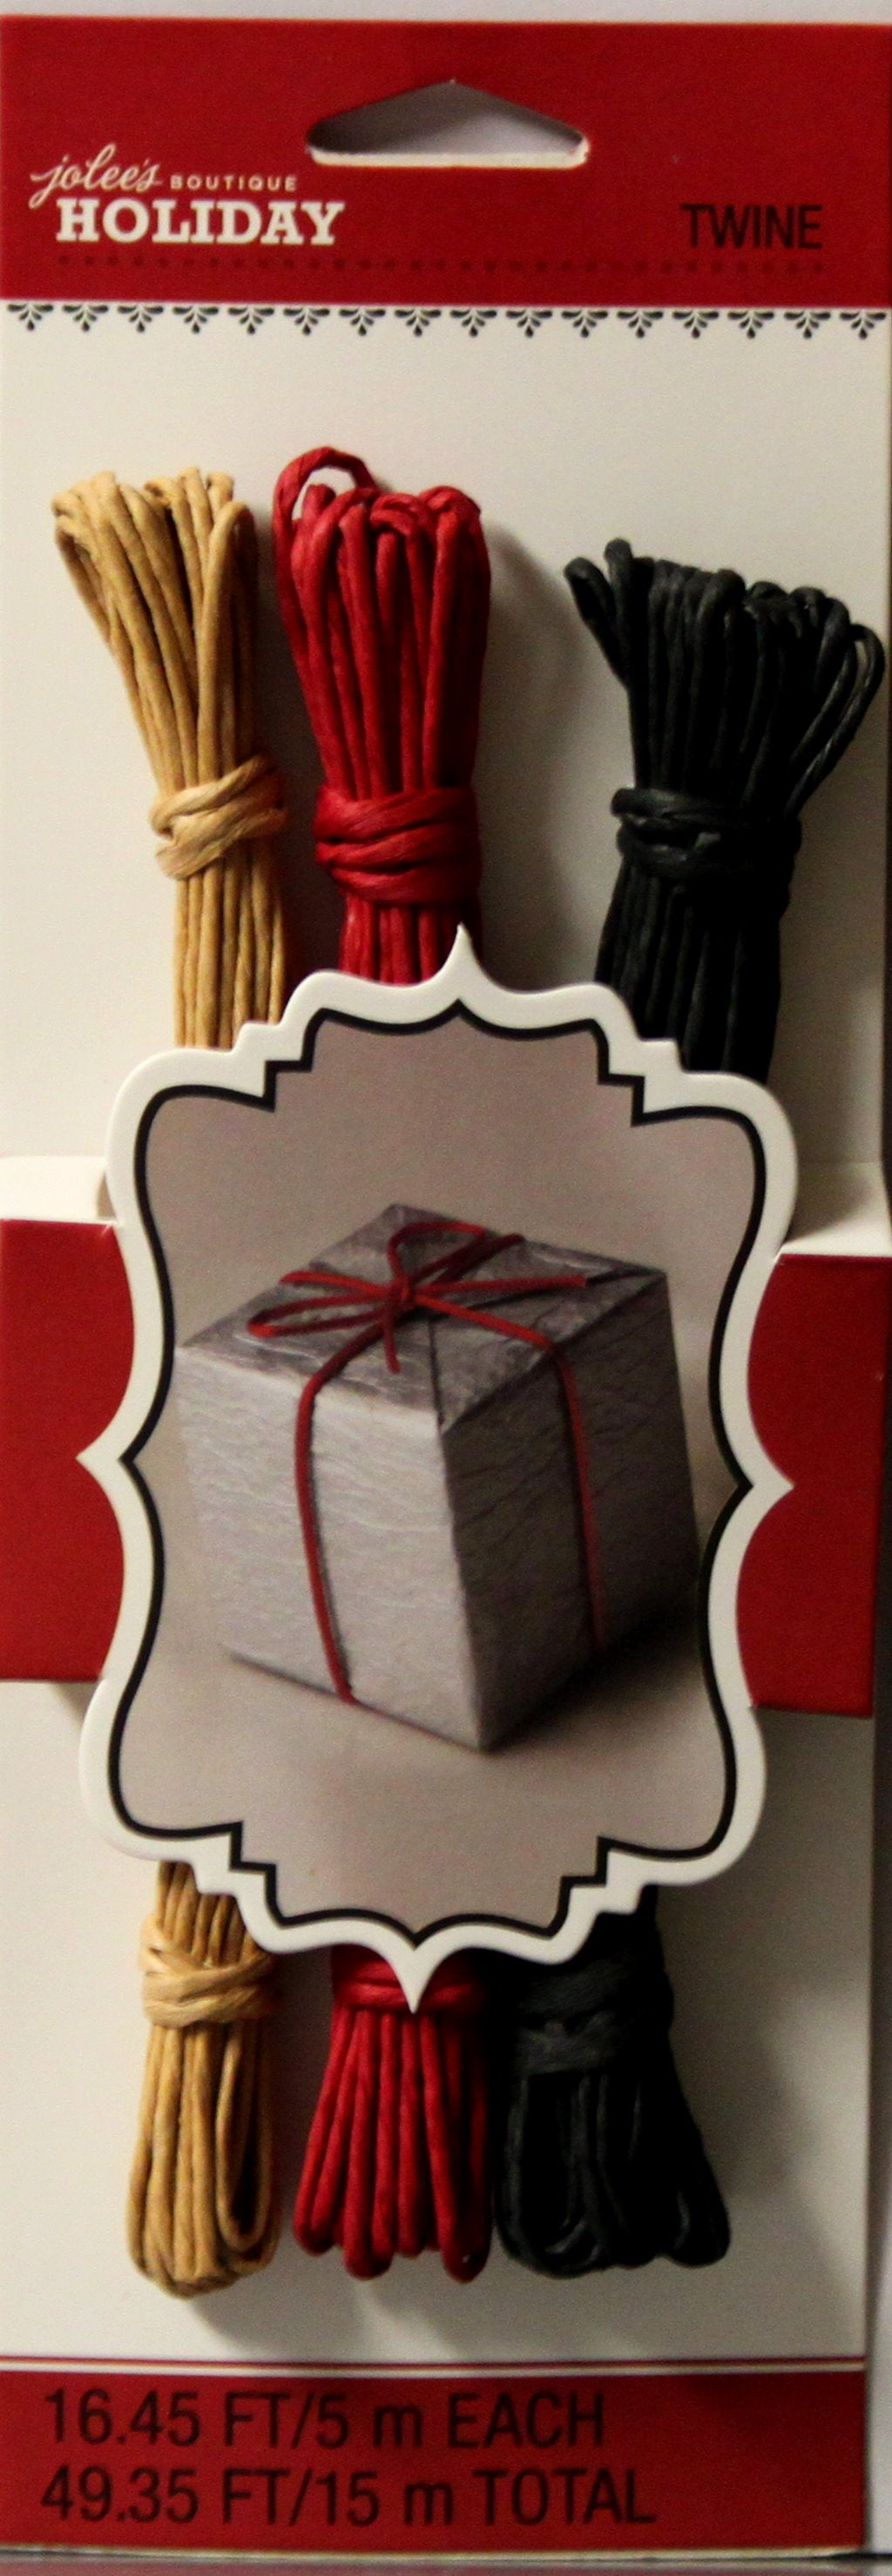 Jolee's Boutique Holiday Paper Twine Set